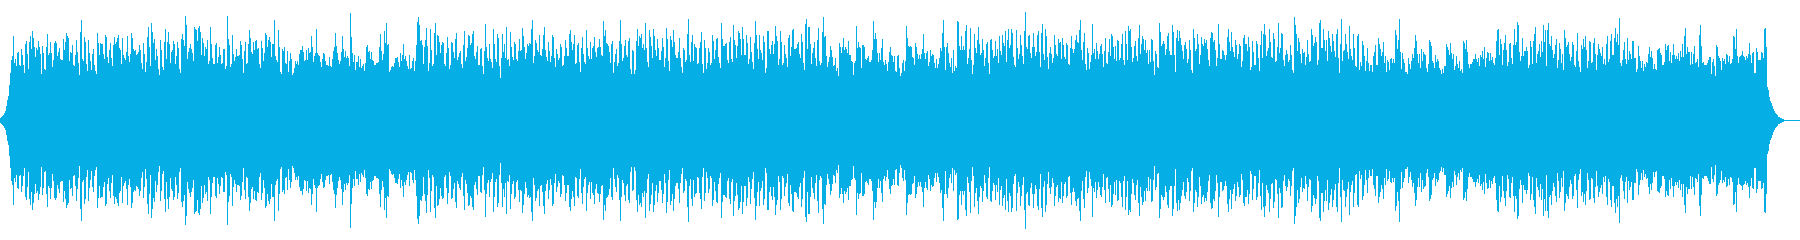 Corporate VP Refreshing, clean, transparent's reproduced waveform